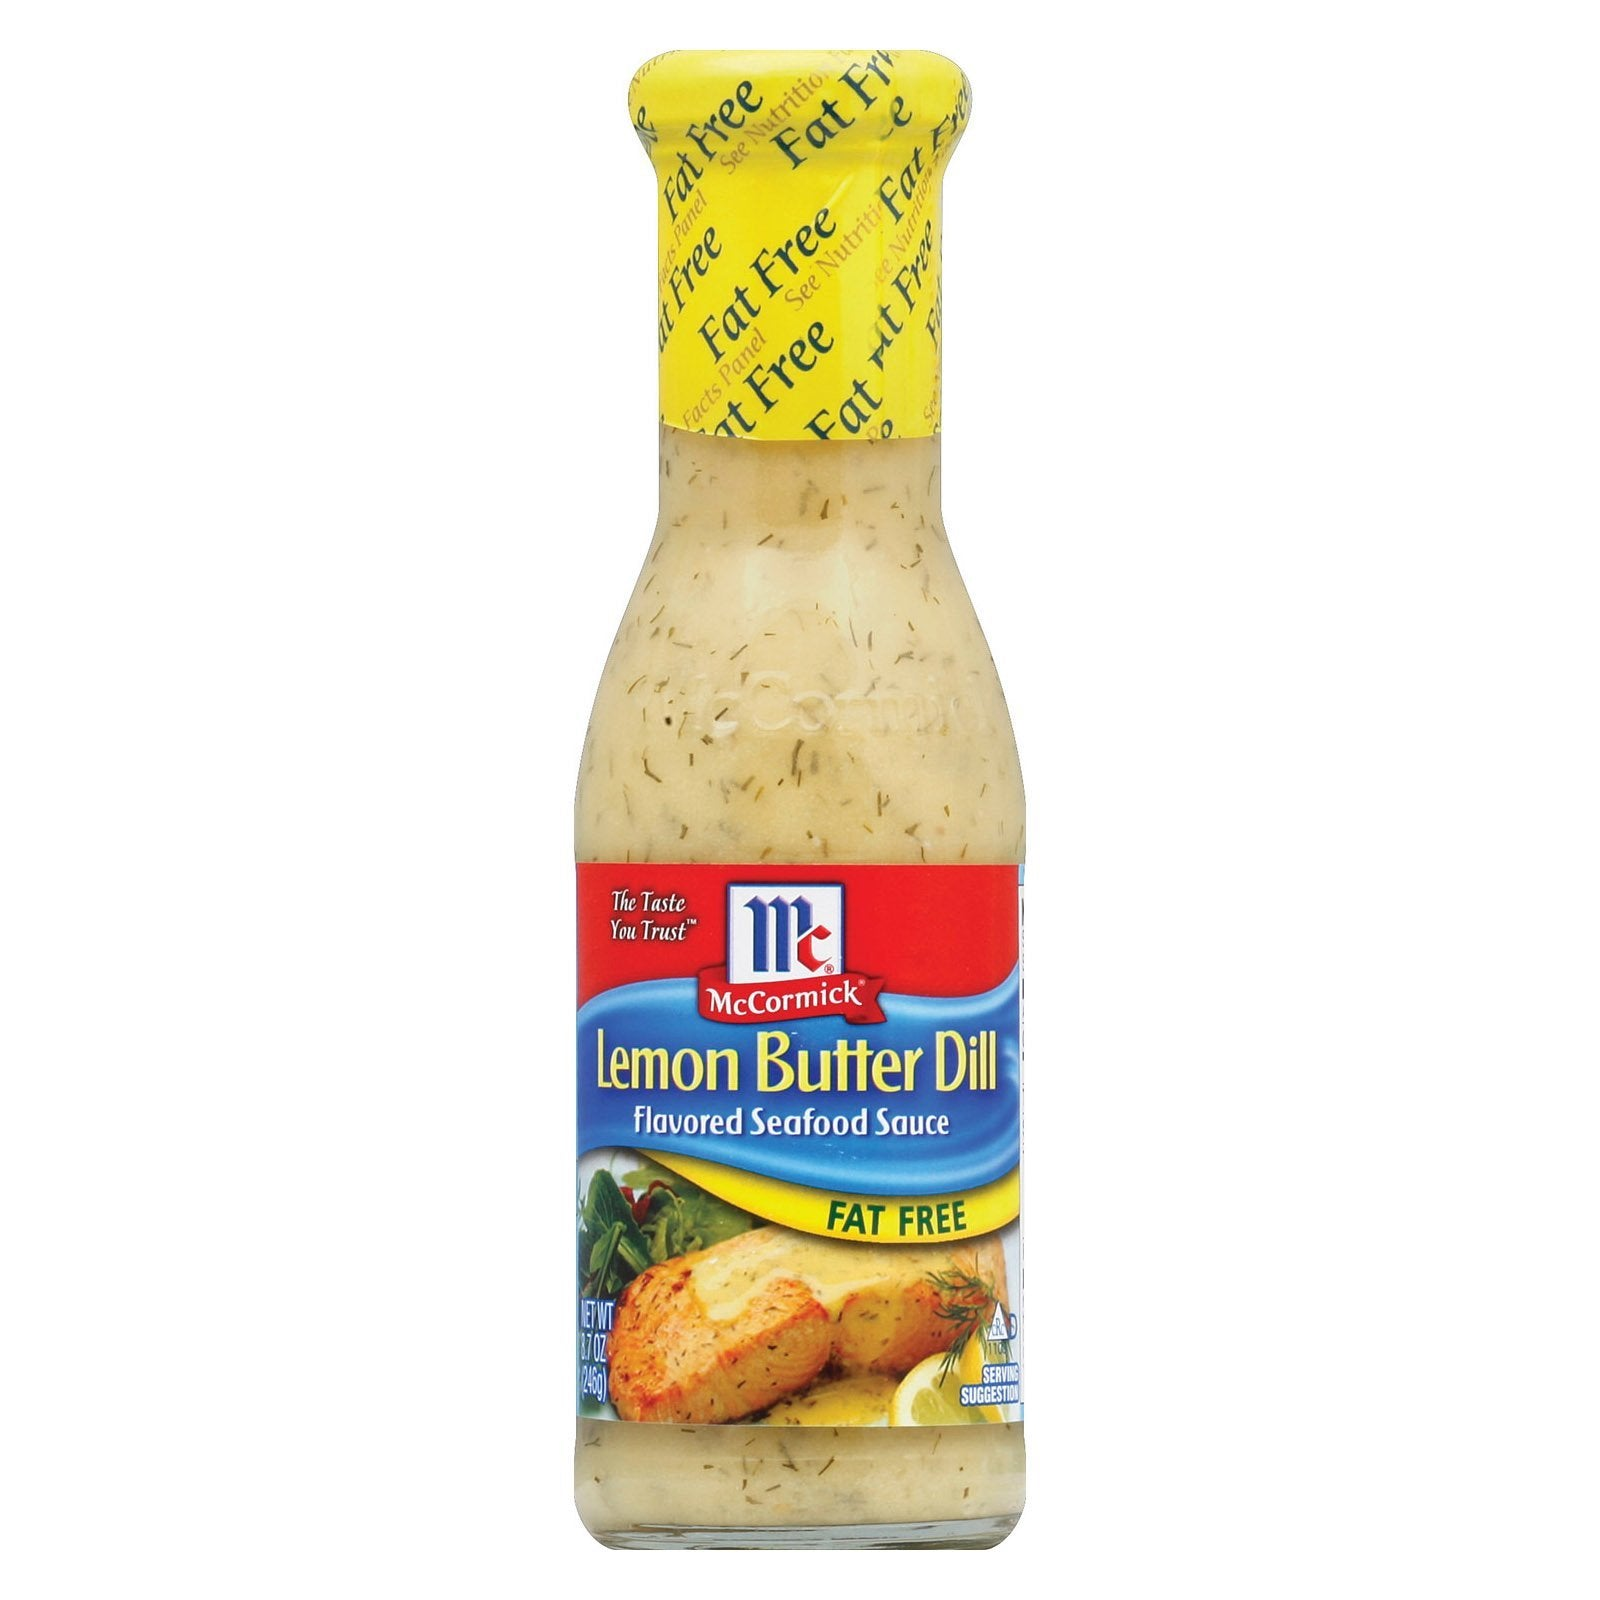 Golden Dipt - Seafood Sauce - Lemon Butter Dill - Case Of 6 - 8.7 Oz. - BeeGreen